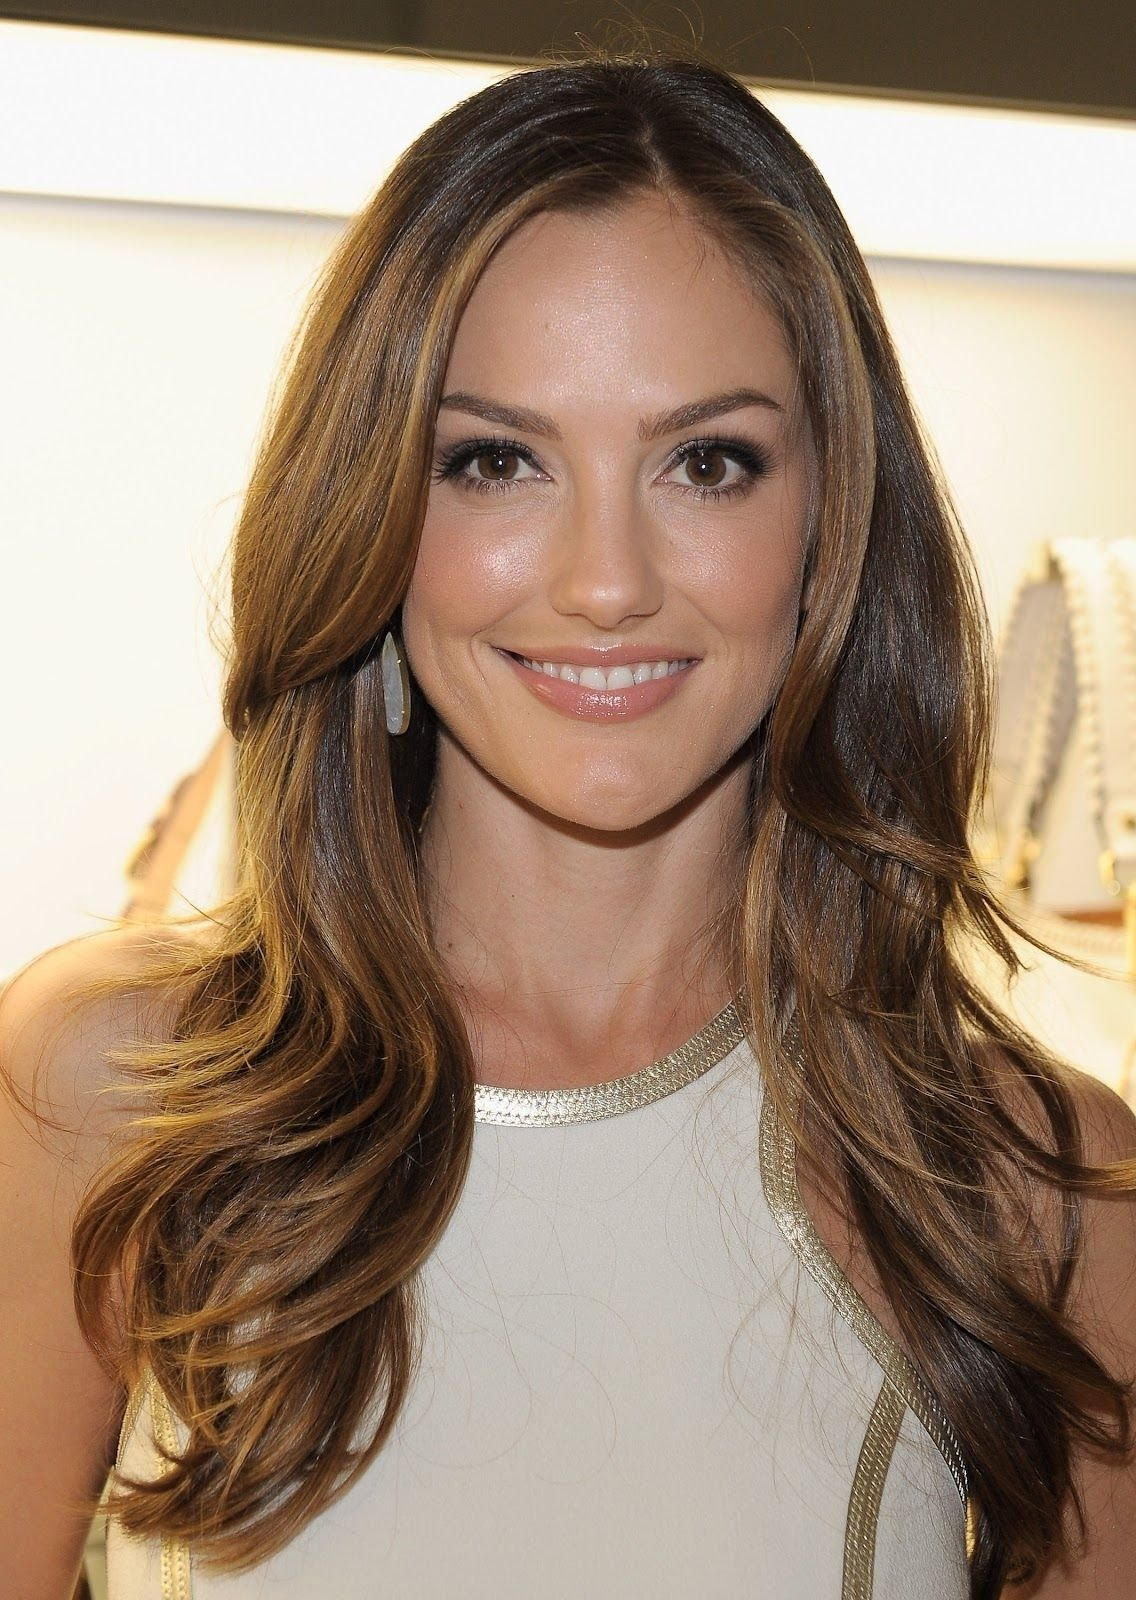 10 Perfect Hair Color Ideas For Brunettes 2013 hair color ideas 2013 for brunettes 121 hair ideas pinterest